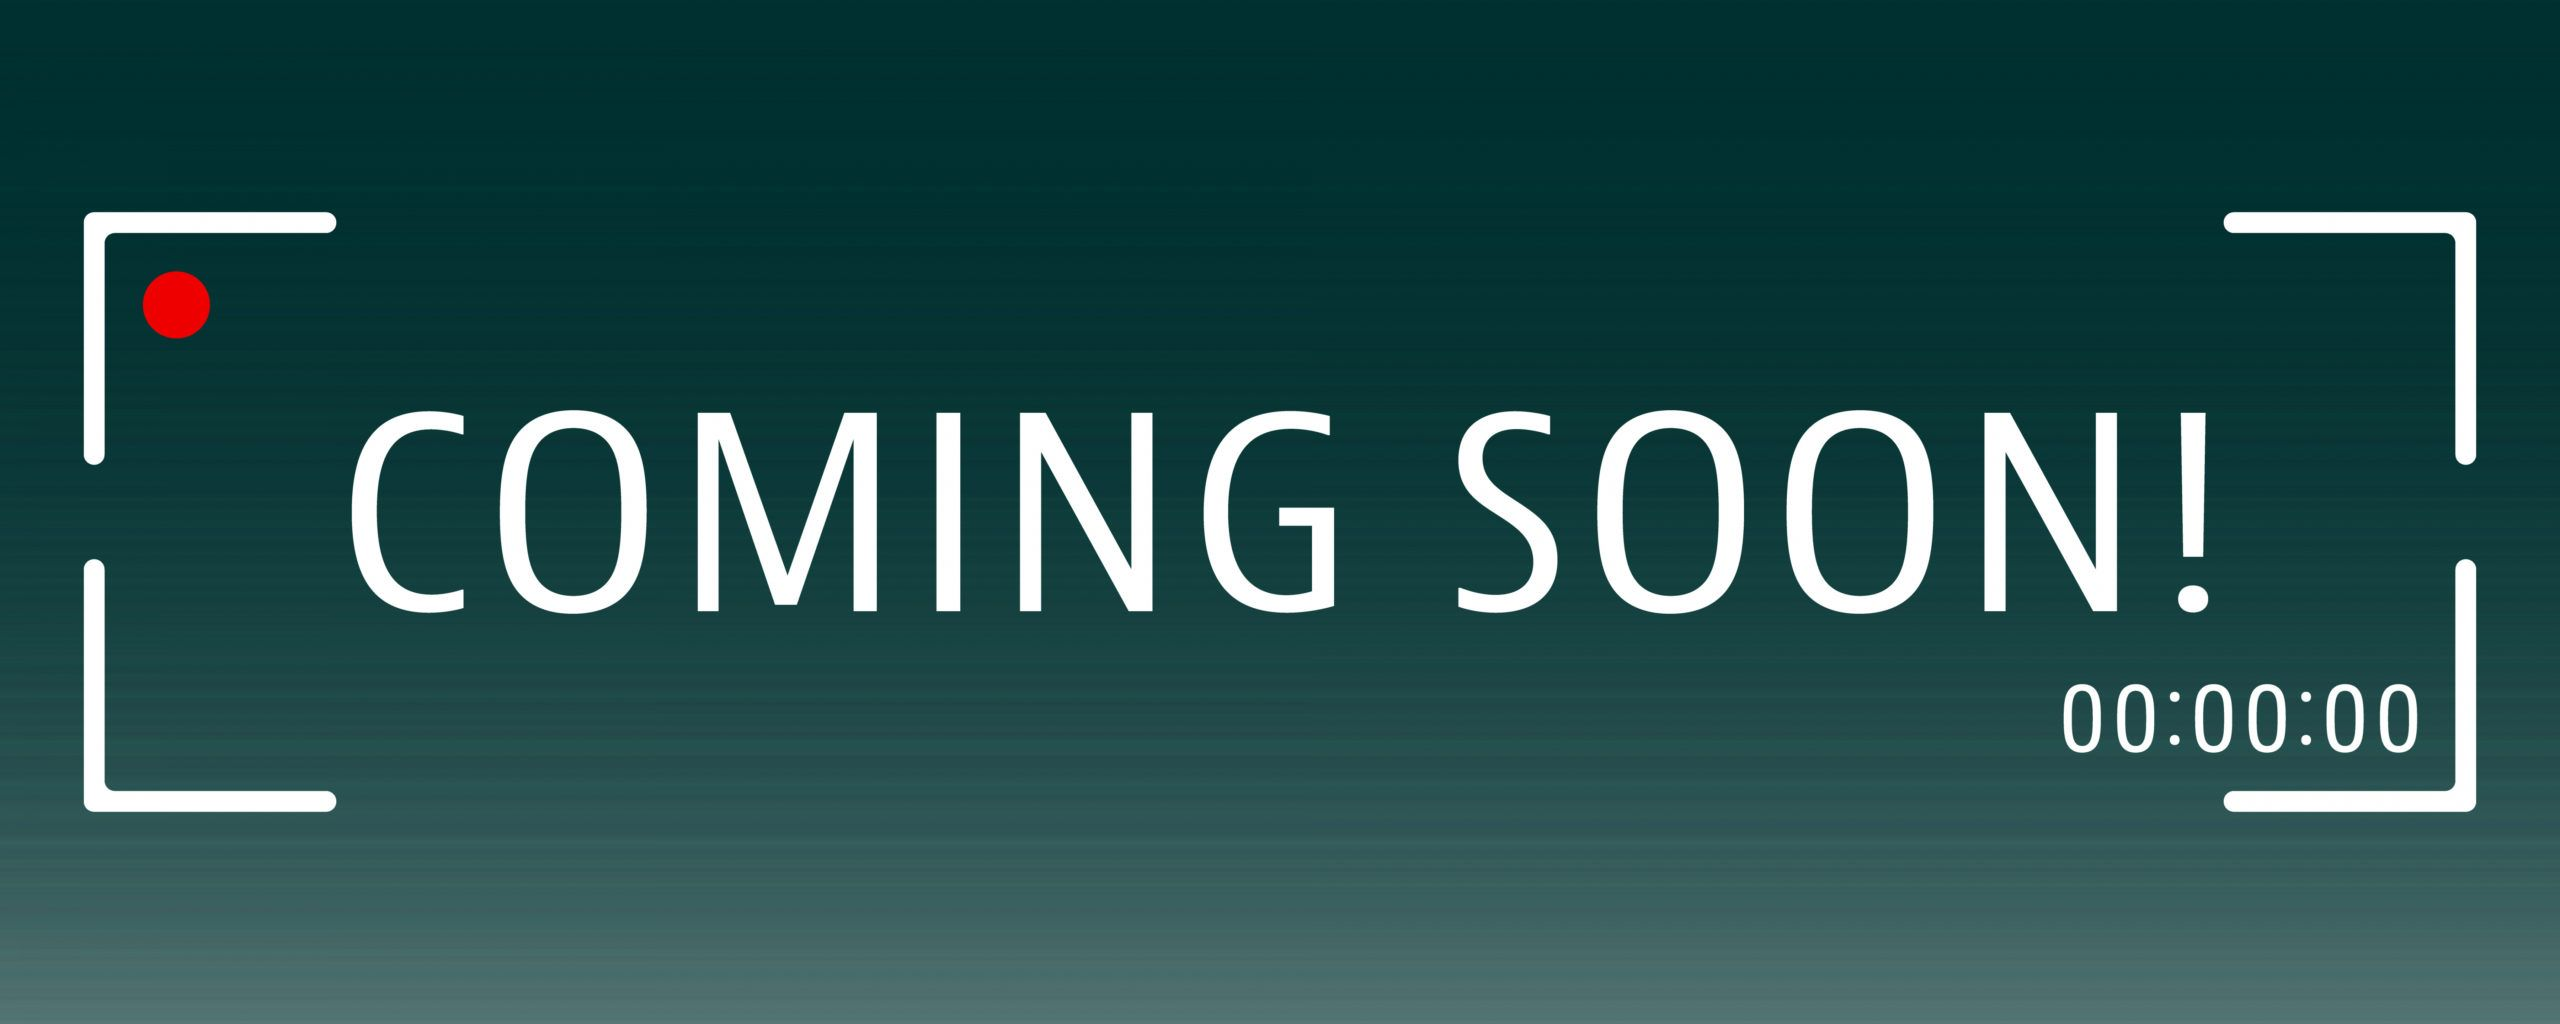 editable coming soon banner template  download free vectors clipart coming soon banner template doc